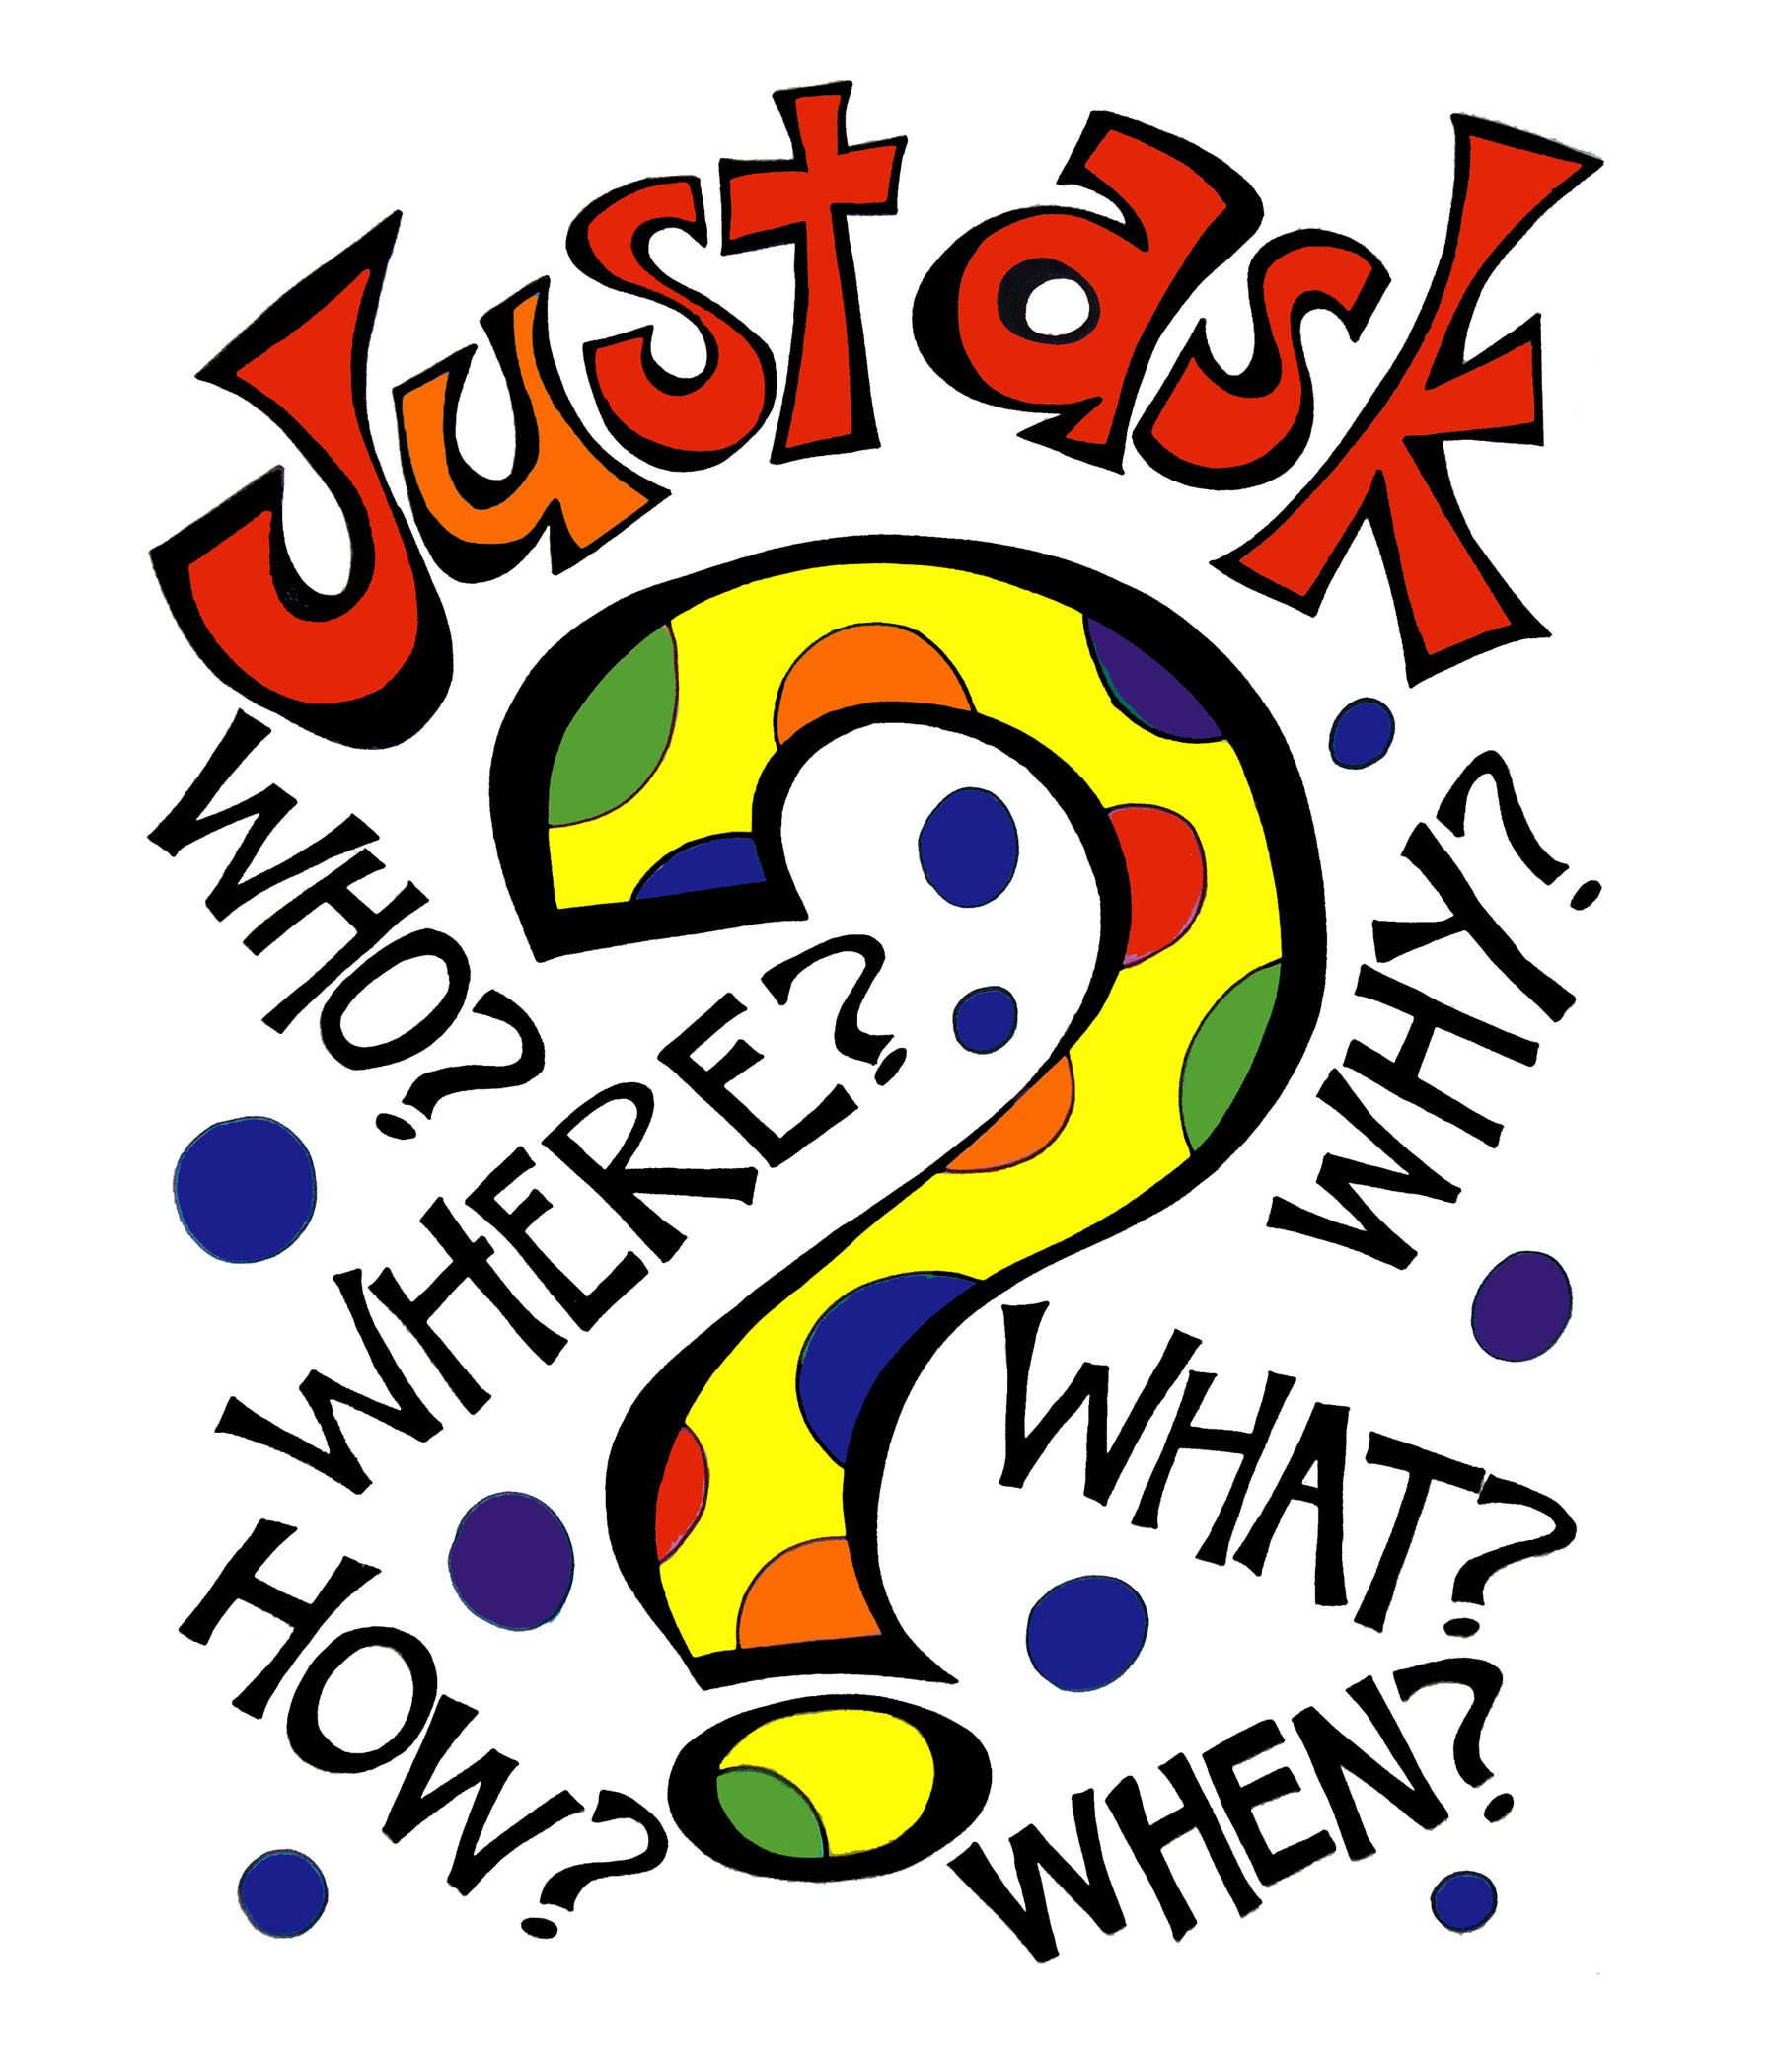 Just Ask! Poster for Classroom Discussion